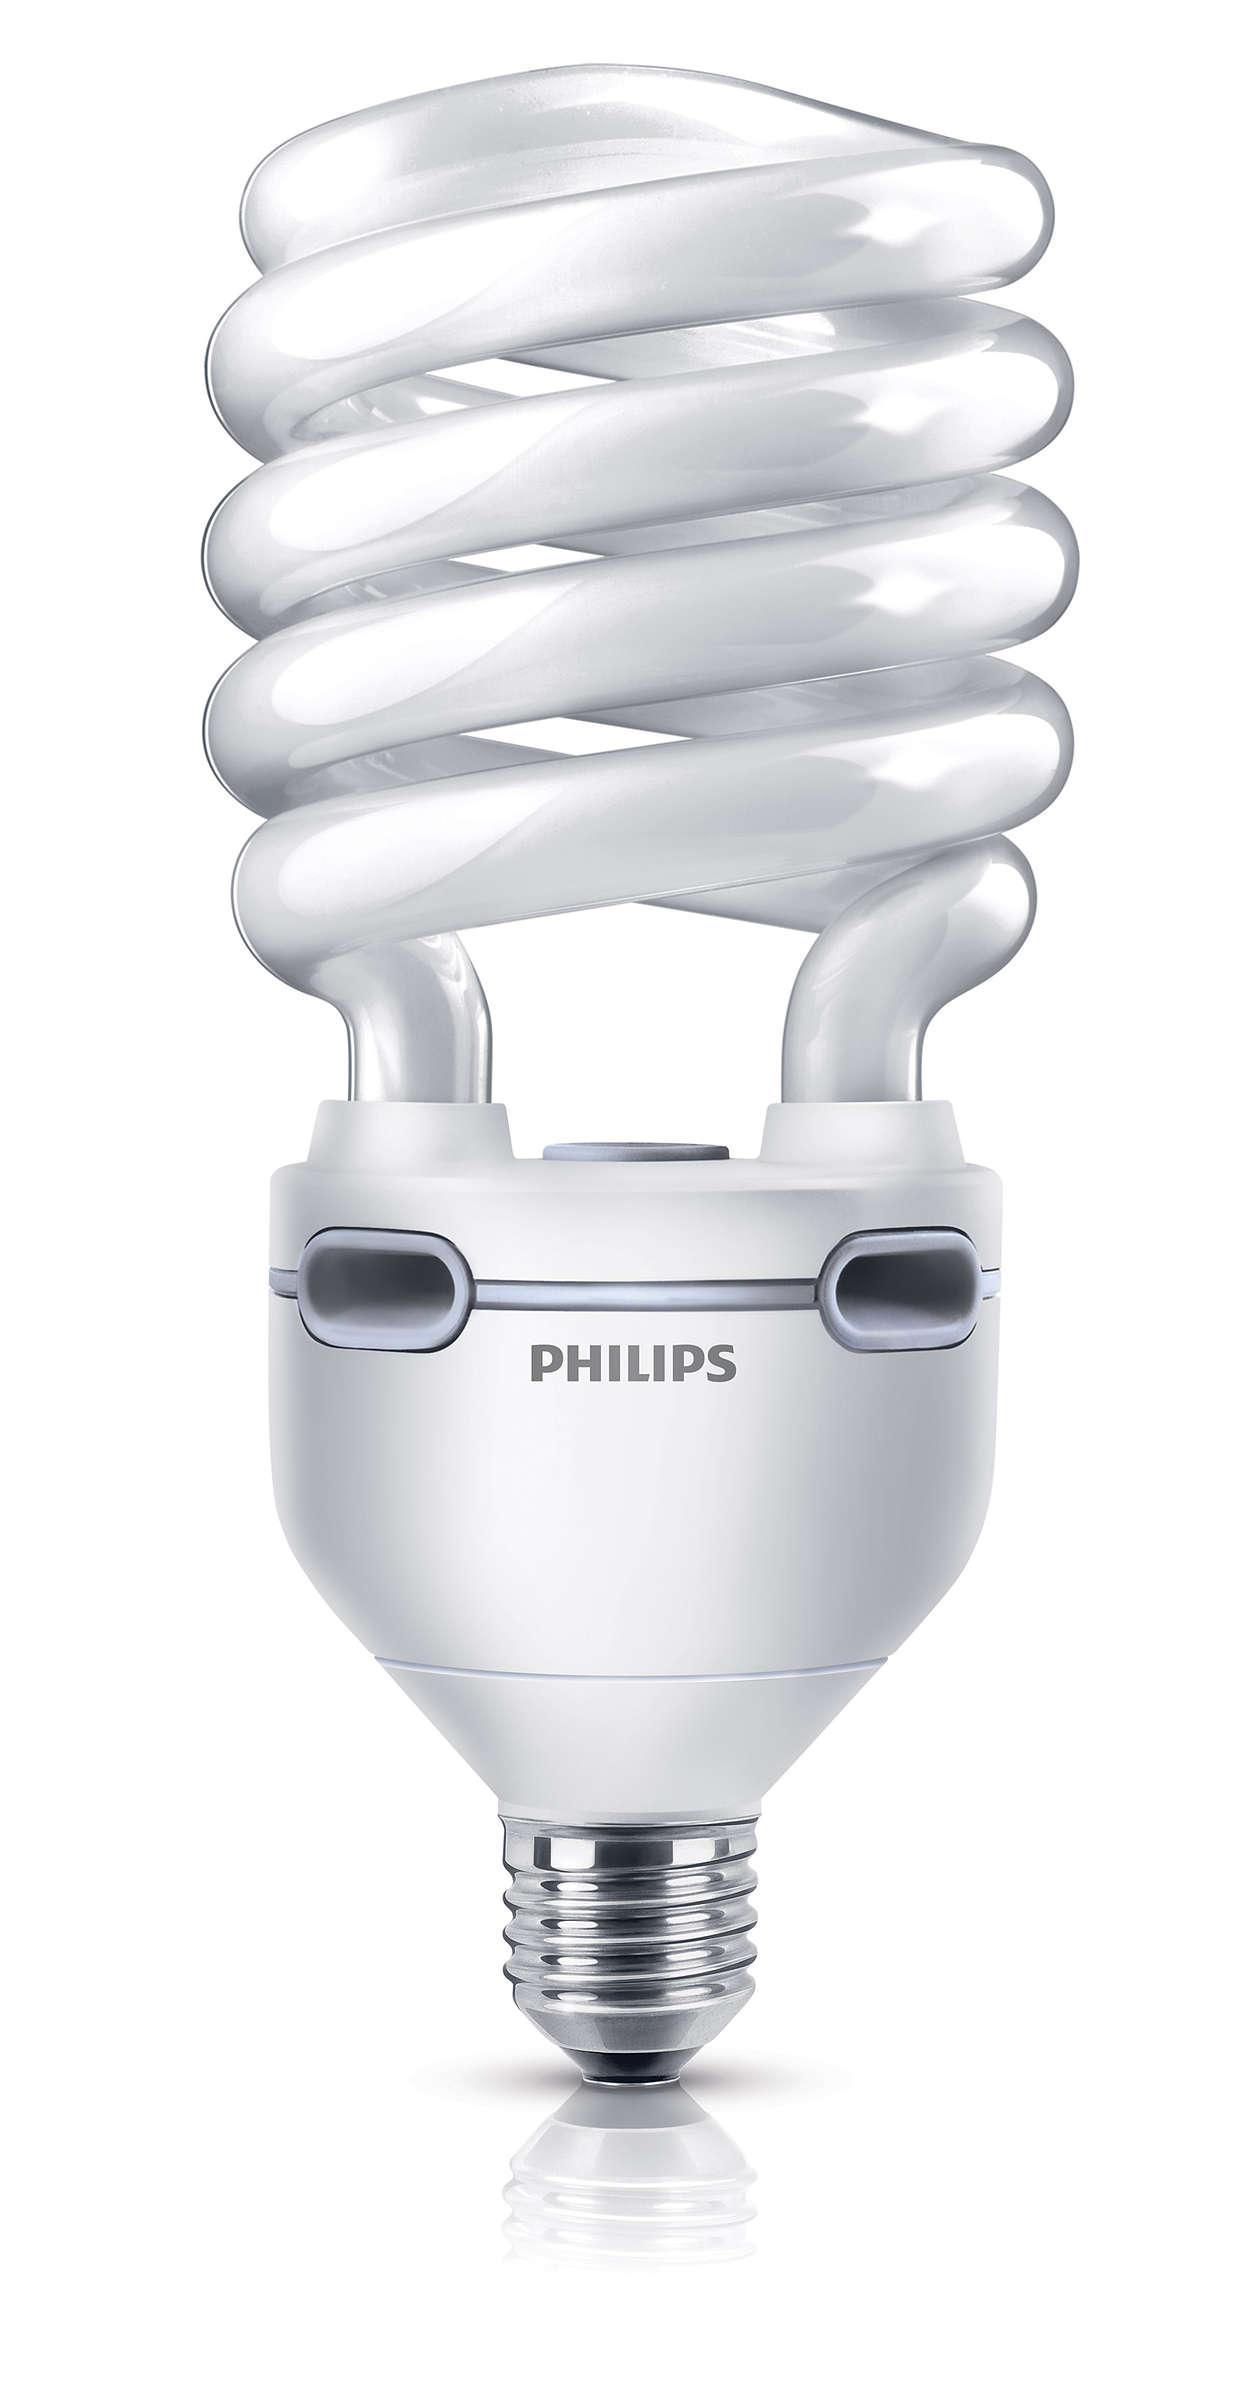 g light led cfl t type most fluorescent lights vision bulbs bulb rate lamp first